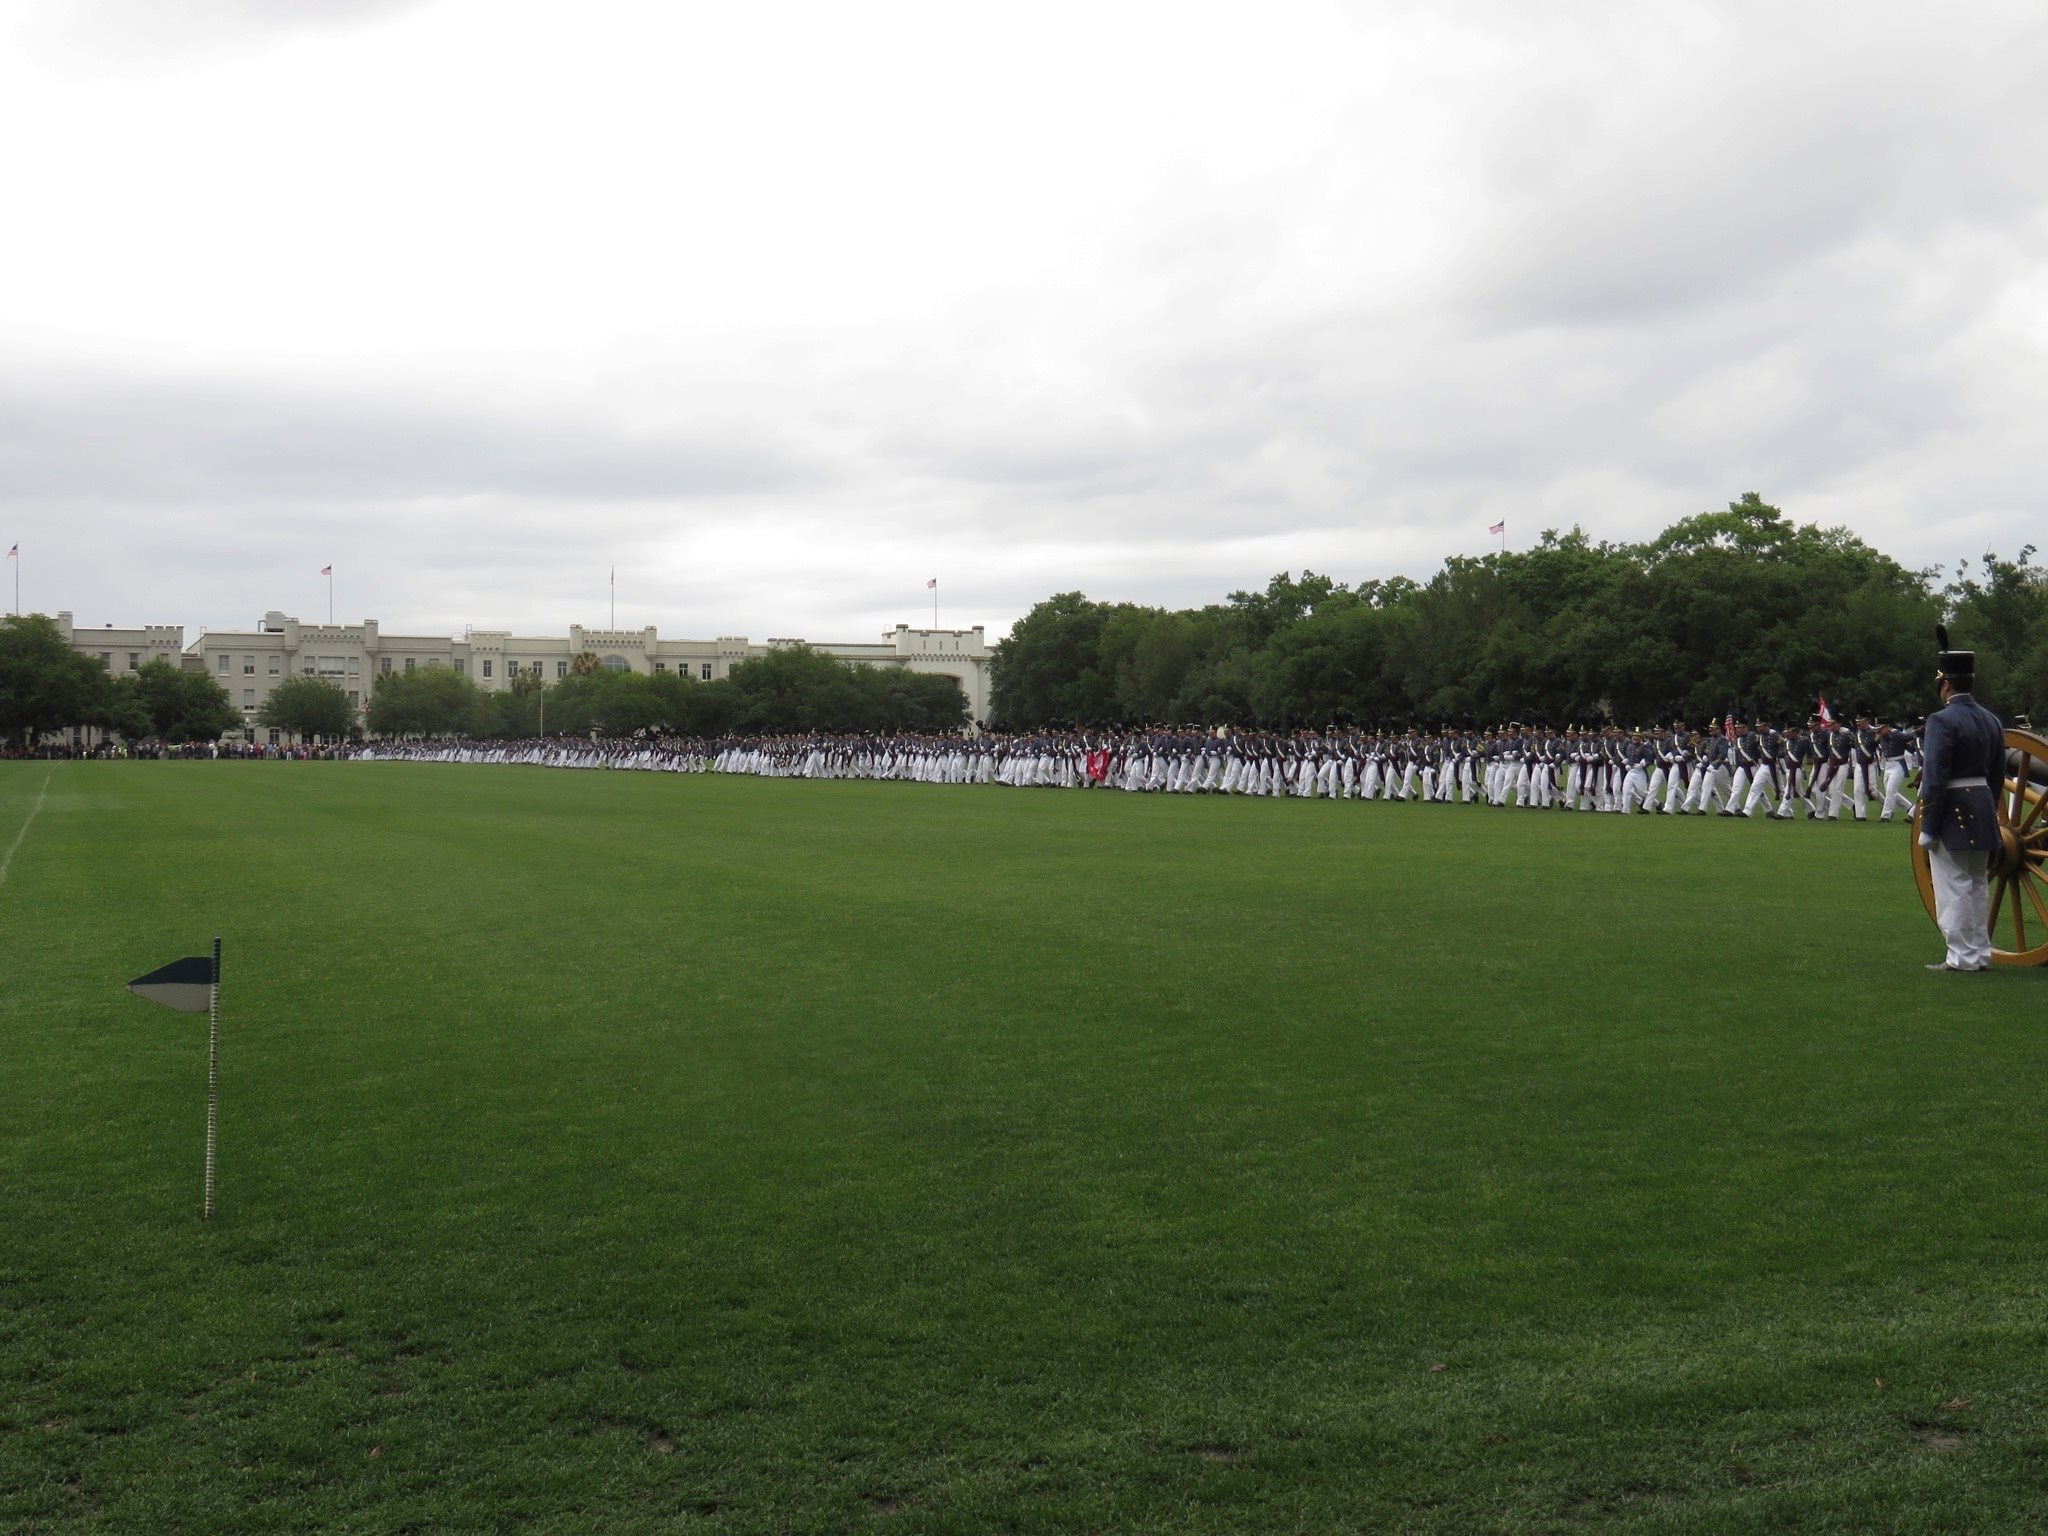 The Class of 2015  form the Long Gray Line